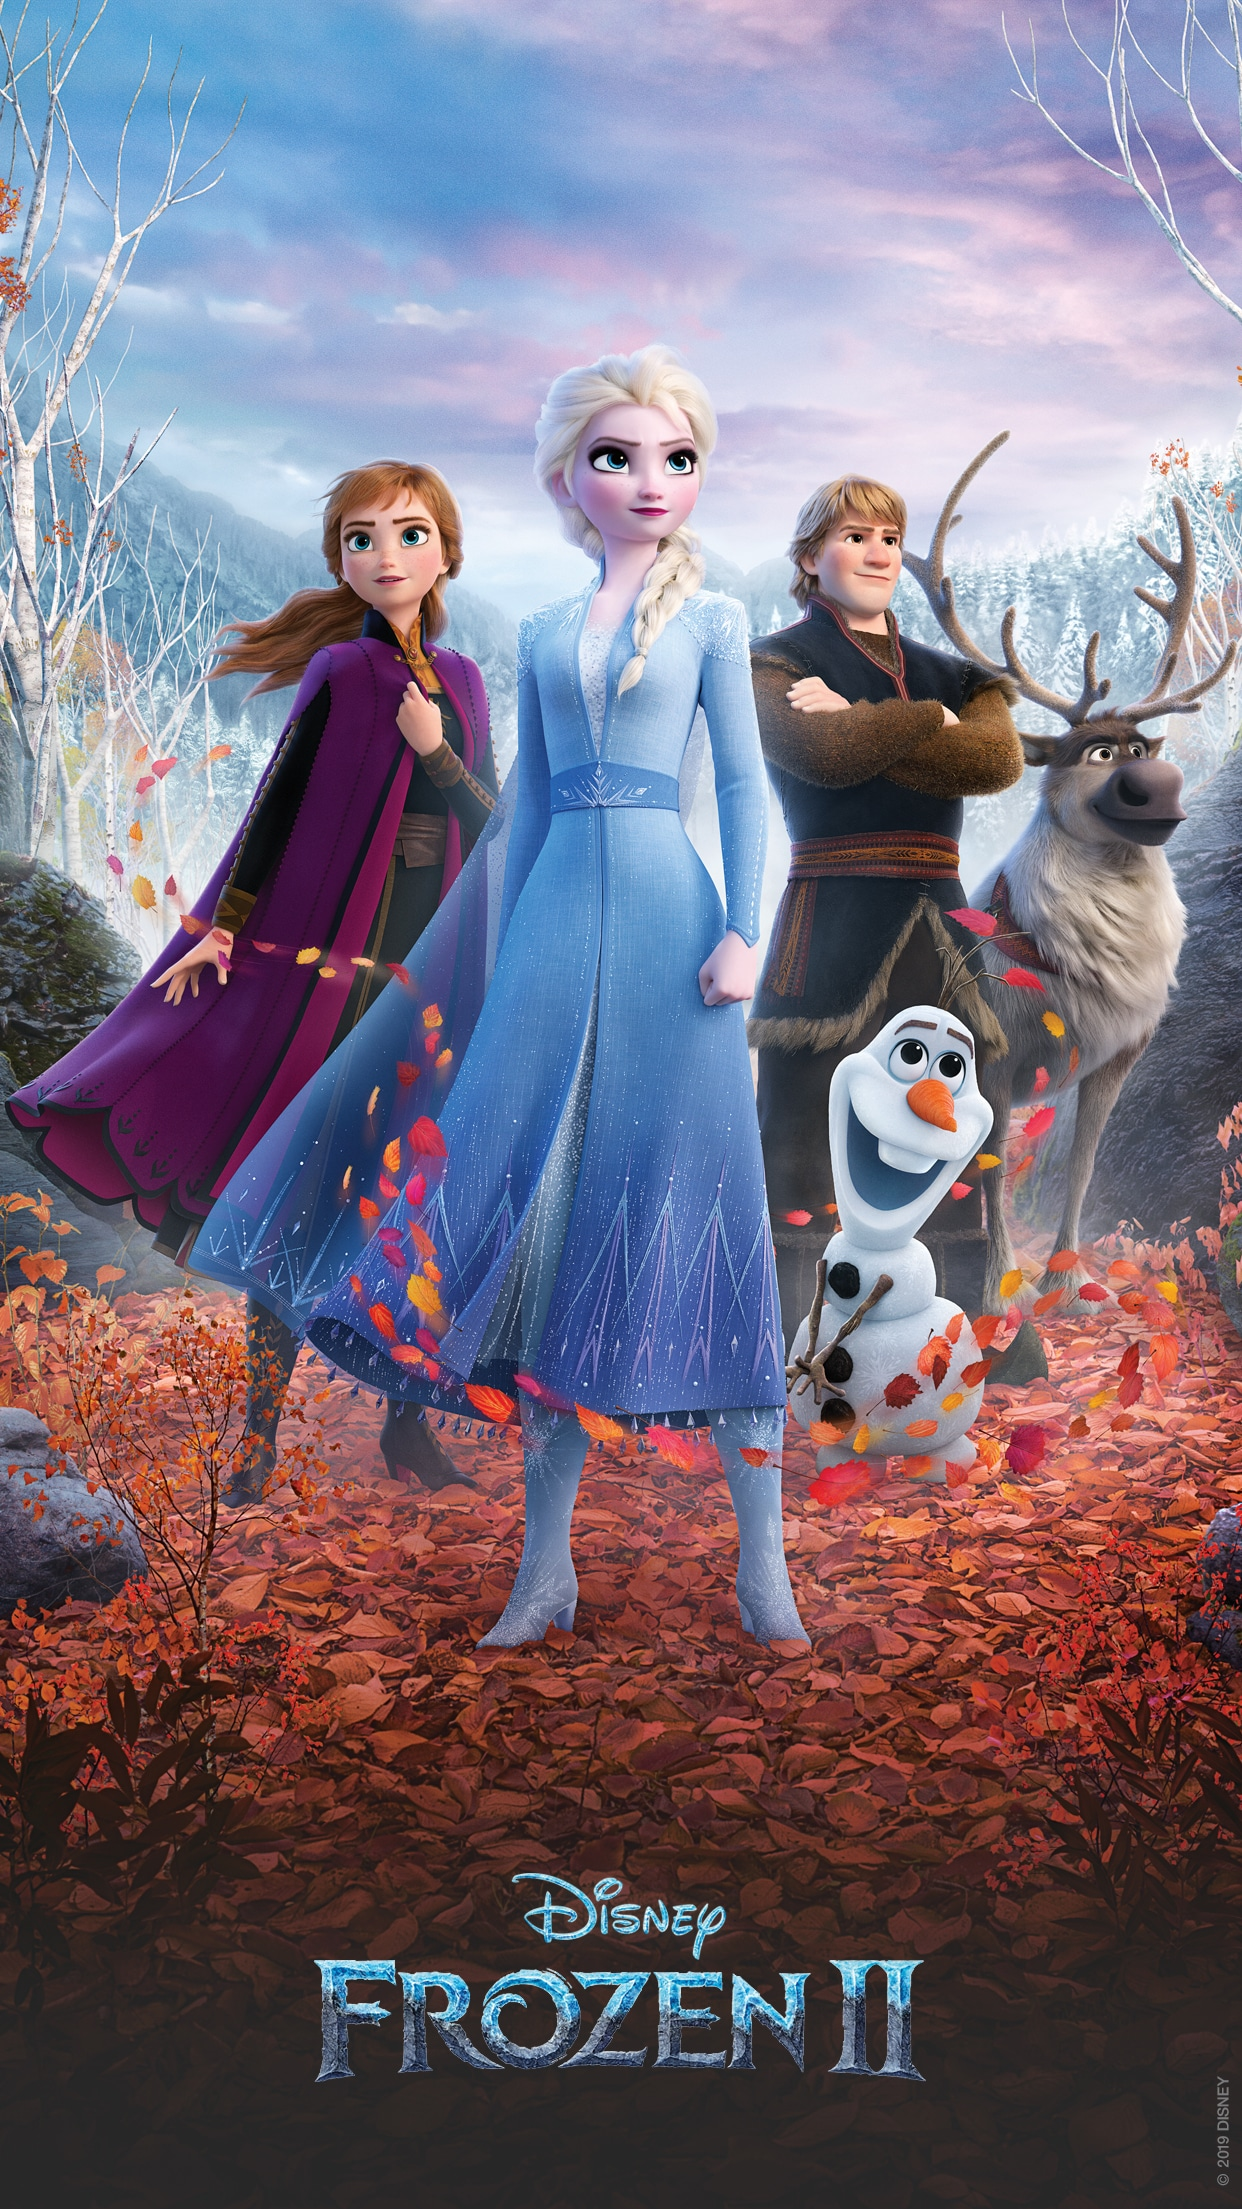 These Disney S Frozen 2 Mobile Wallpapers Will Put You In